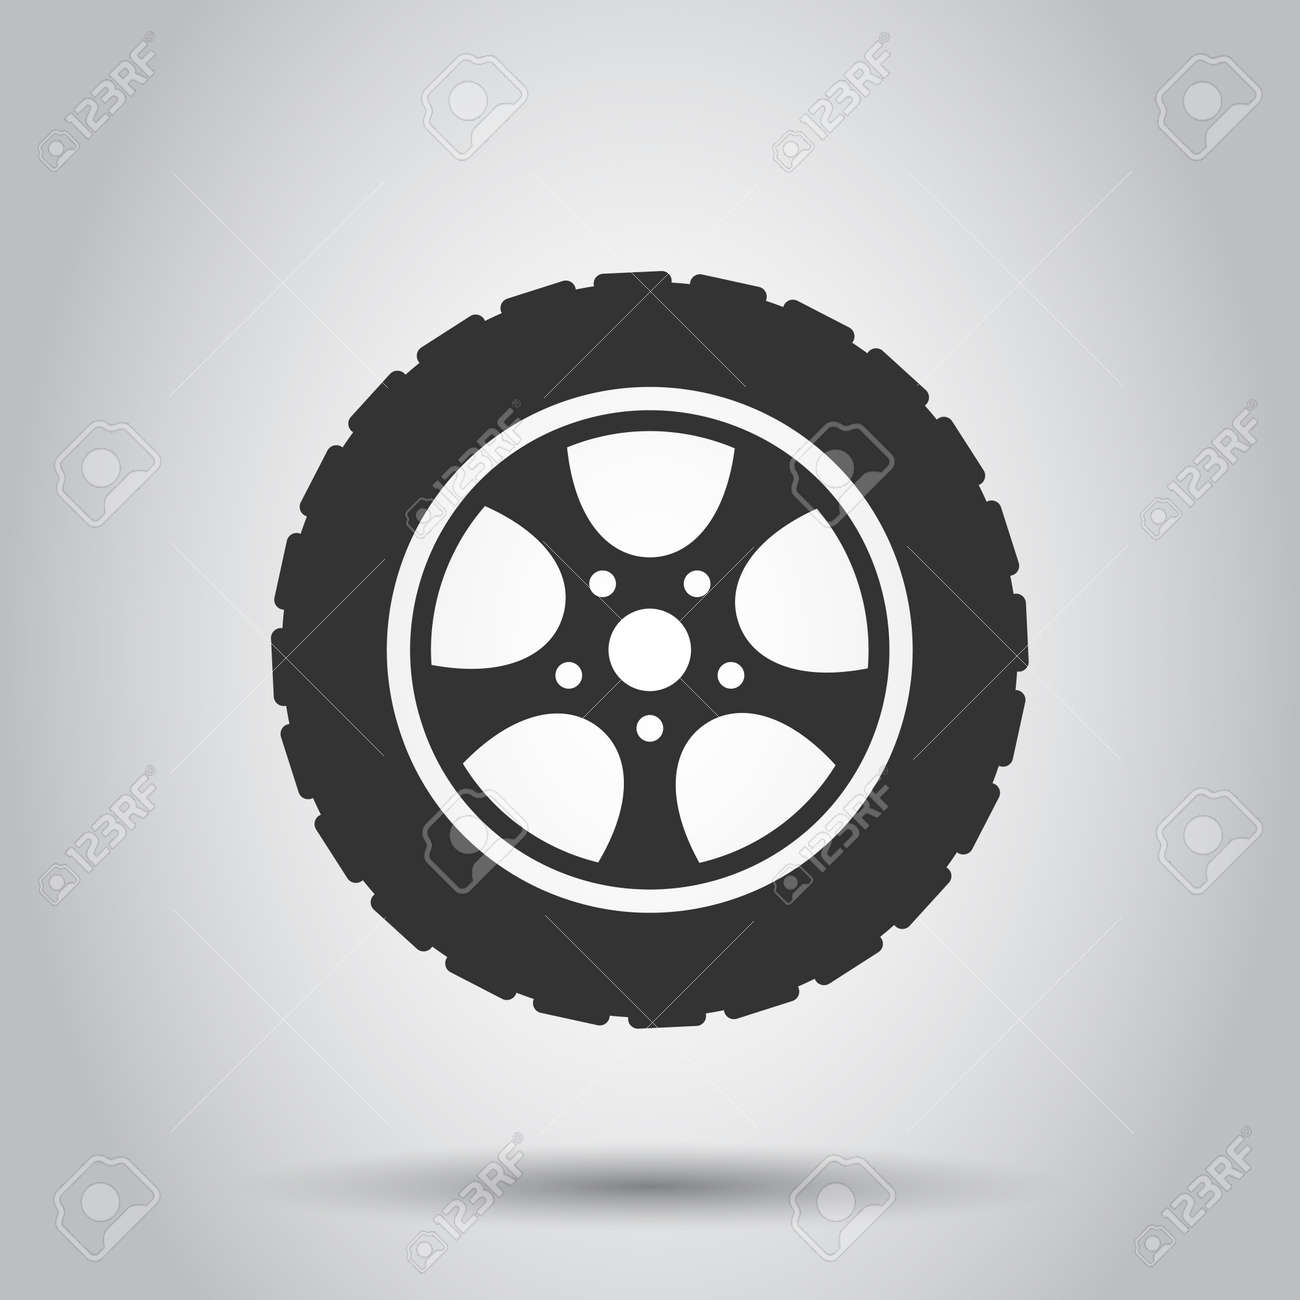 Car wheel icon in flat style. Vehicle part vector illustration on white isolated background. Tyre business concept. - 154465148